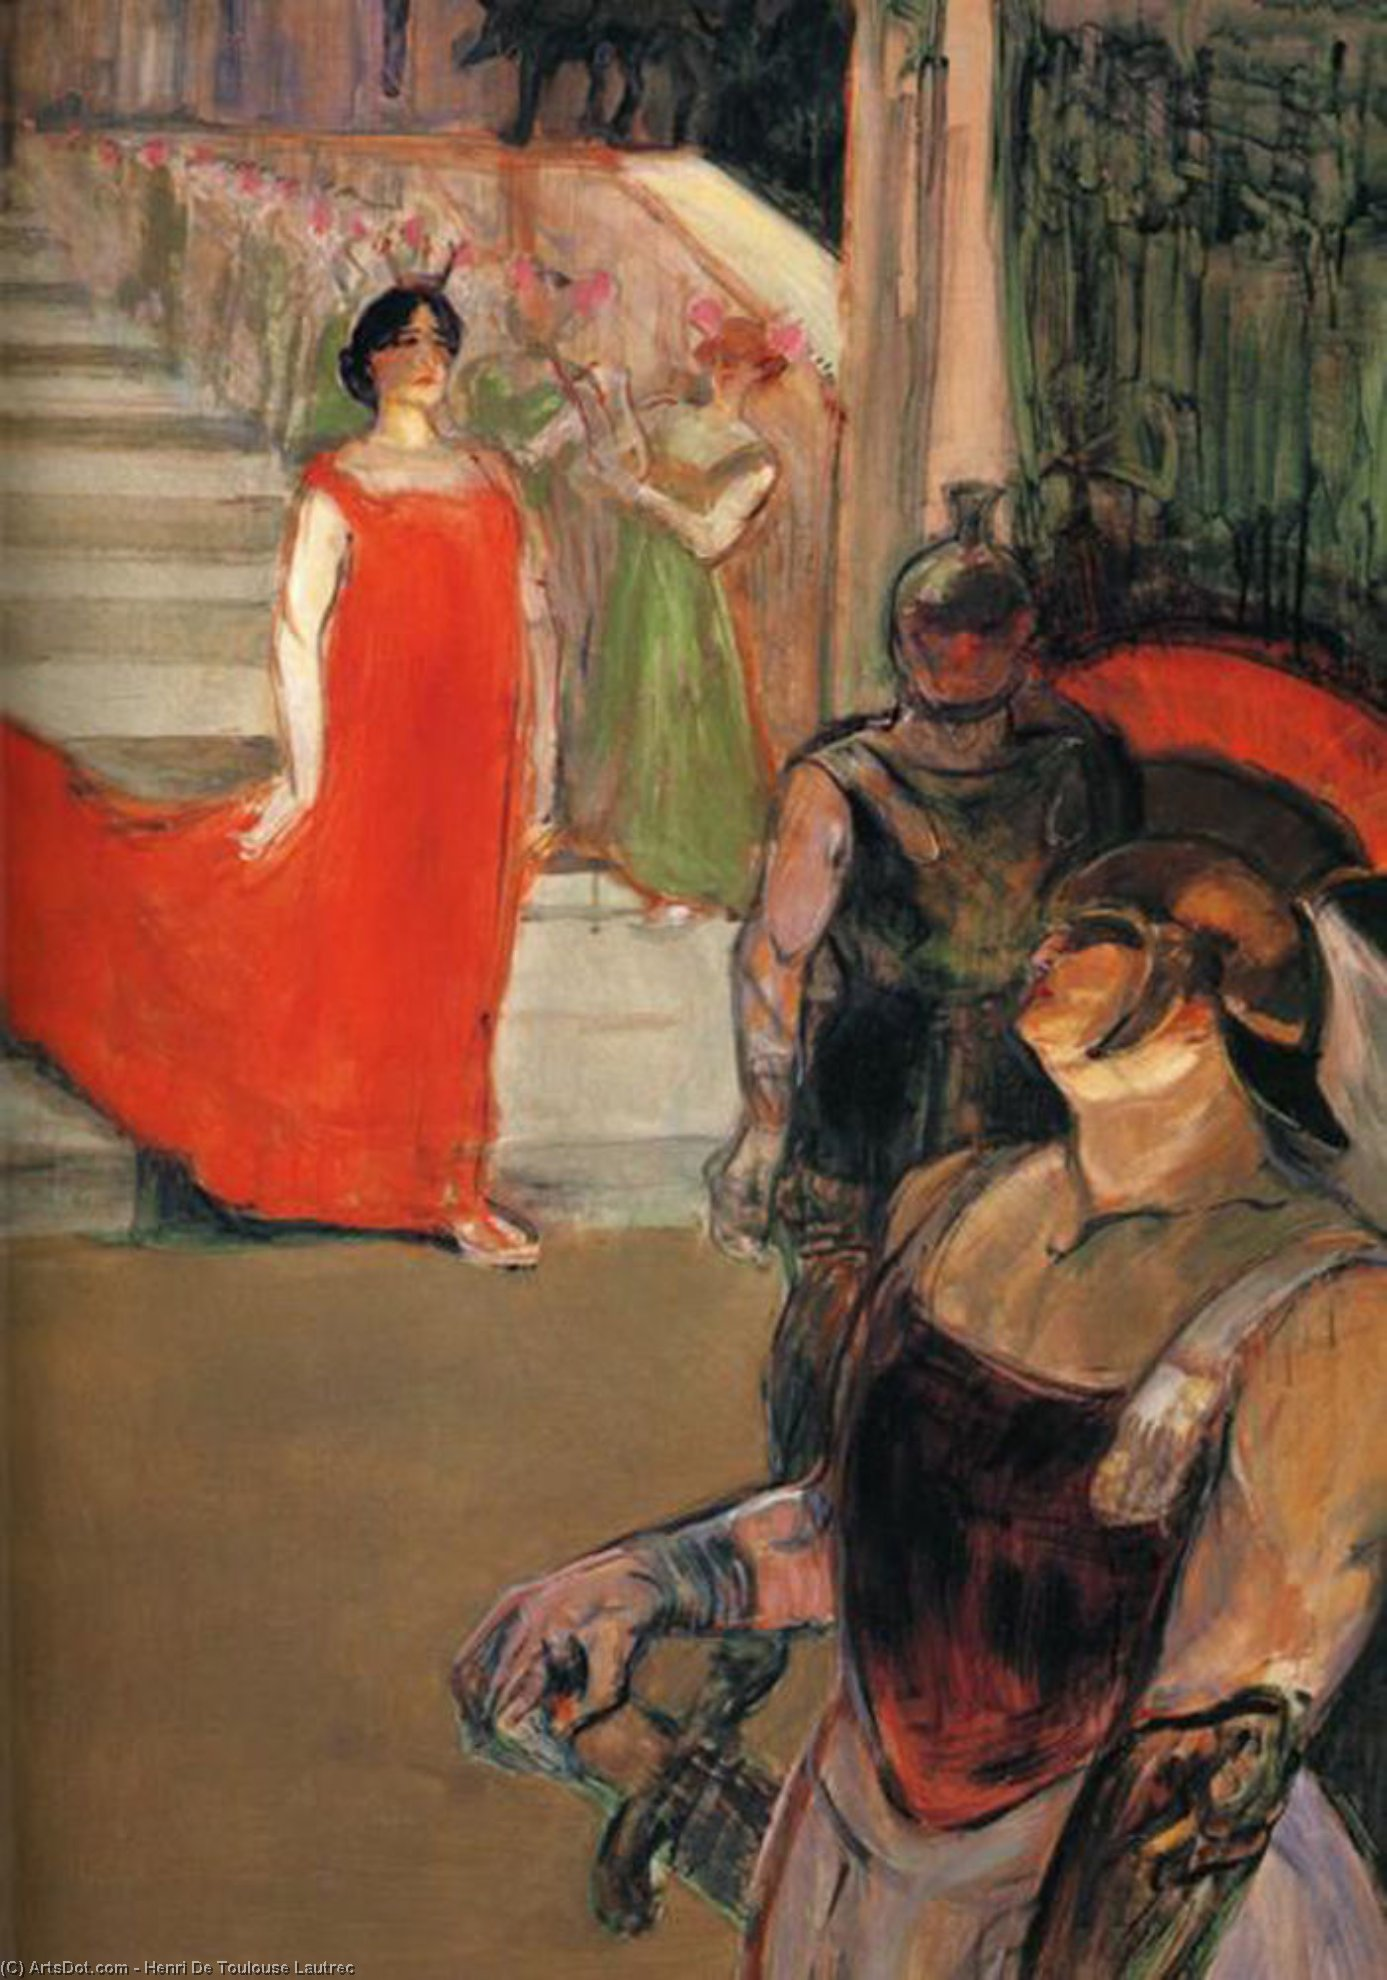 Die Opera Messalina in Bordeaux, öl von Henri De Toulouse Lautrec (1864-1901, France)